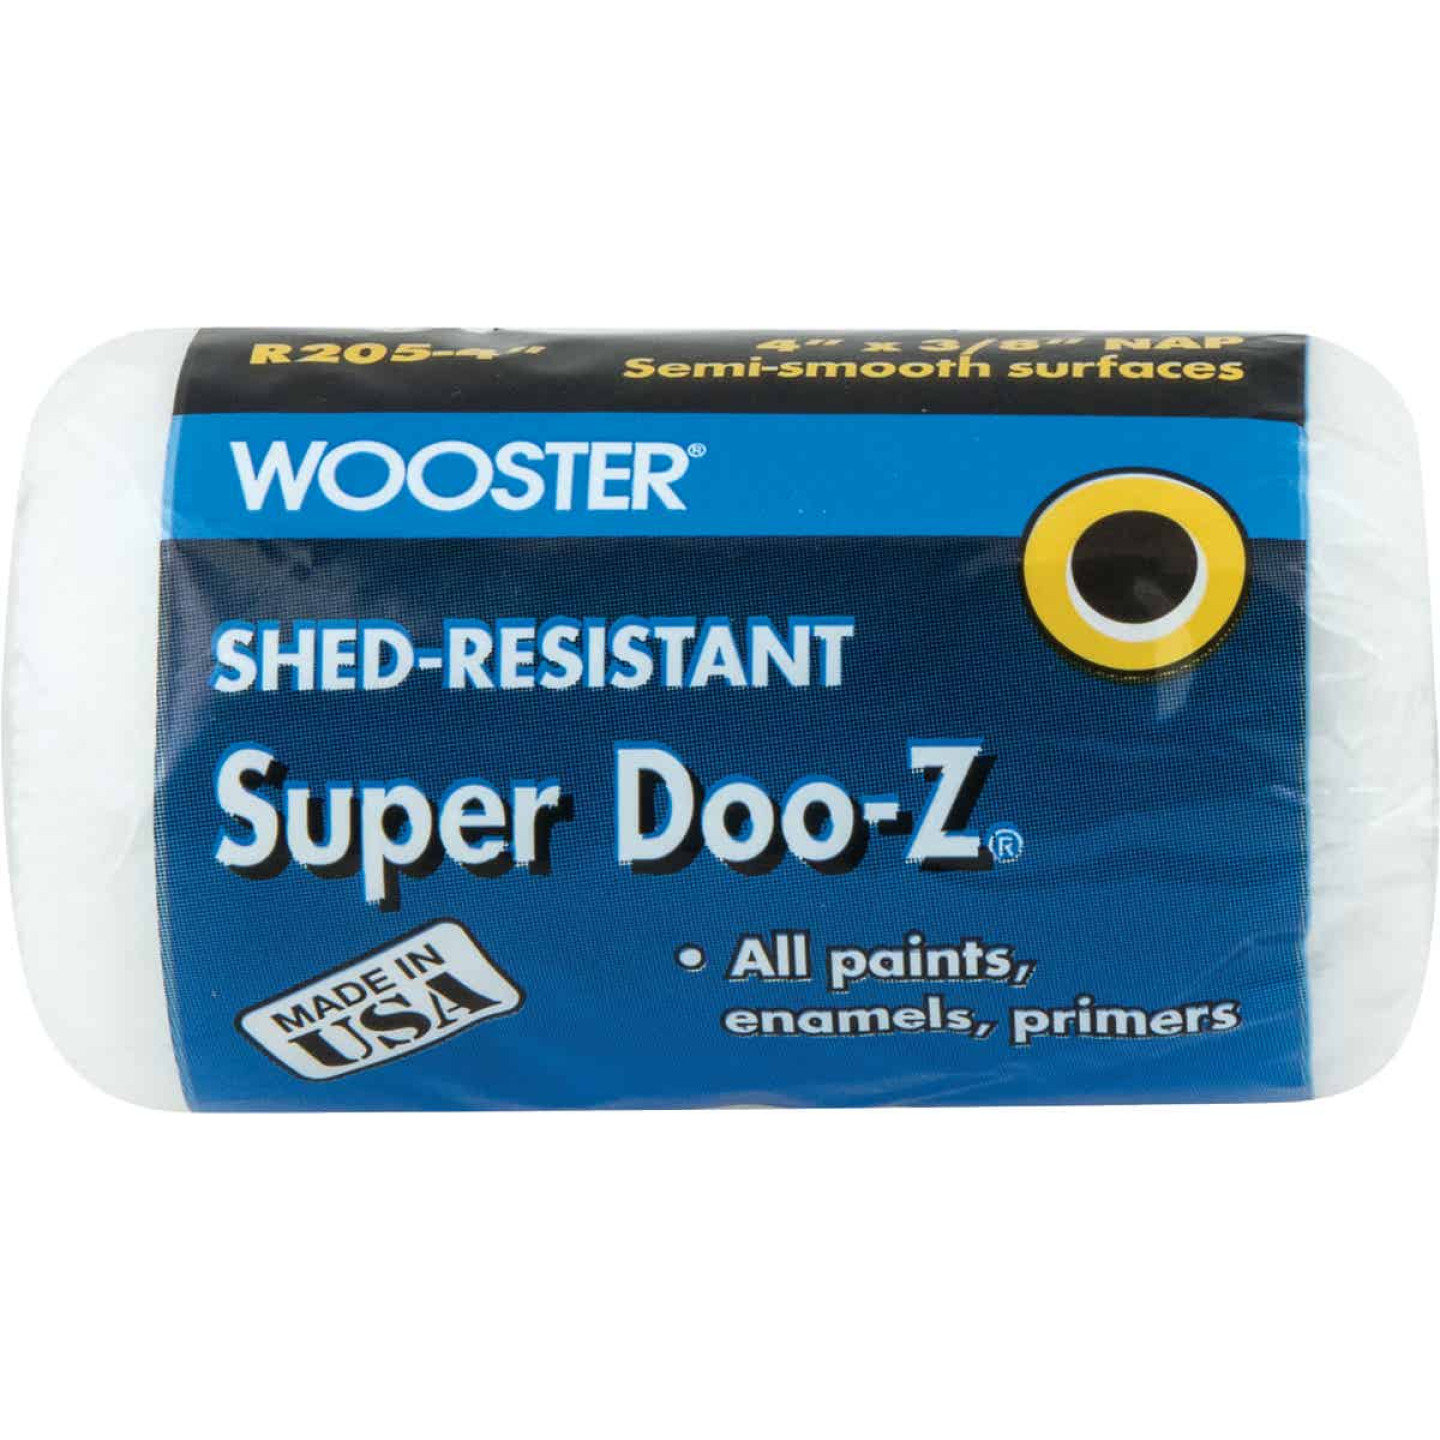 Wooster Super Doo-Z 4 In. x 3/8 In. Woven Fabric Roller Cover Image 1